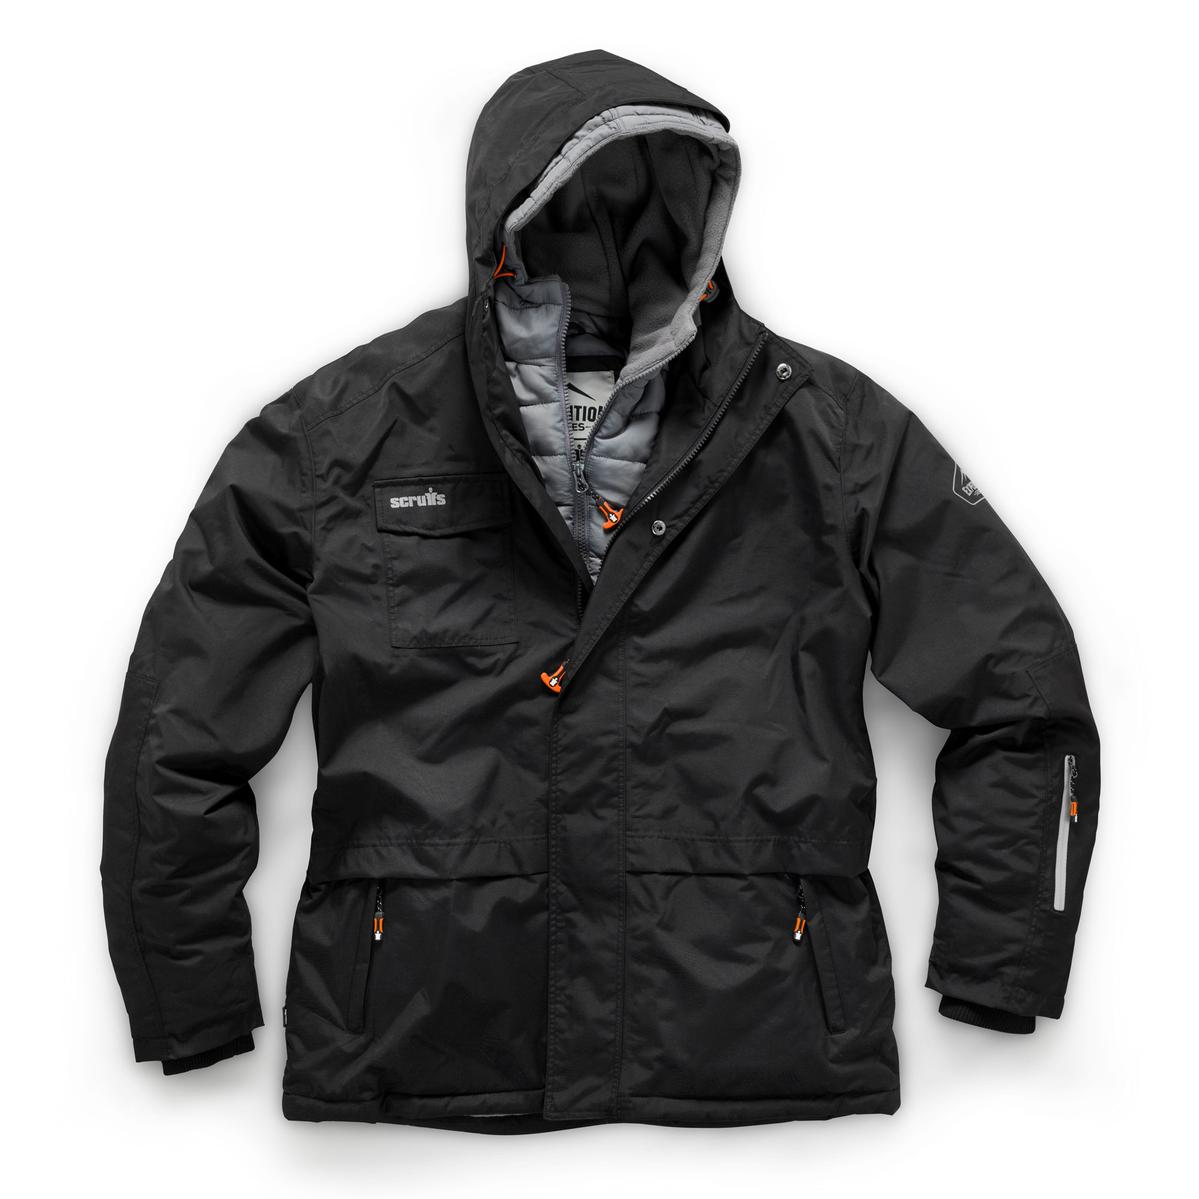 Expedition Double Zip Jacket